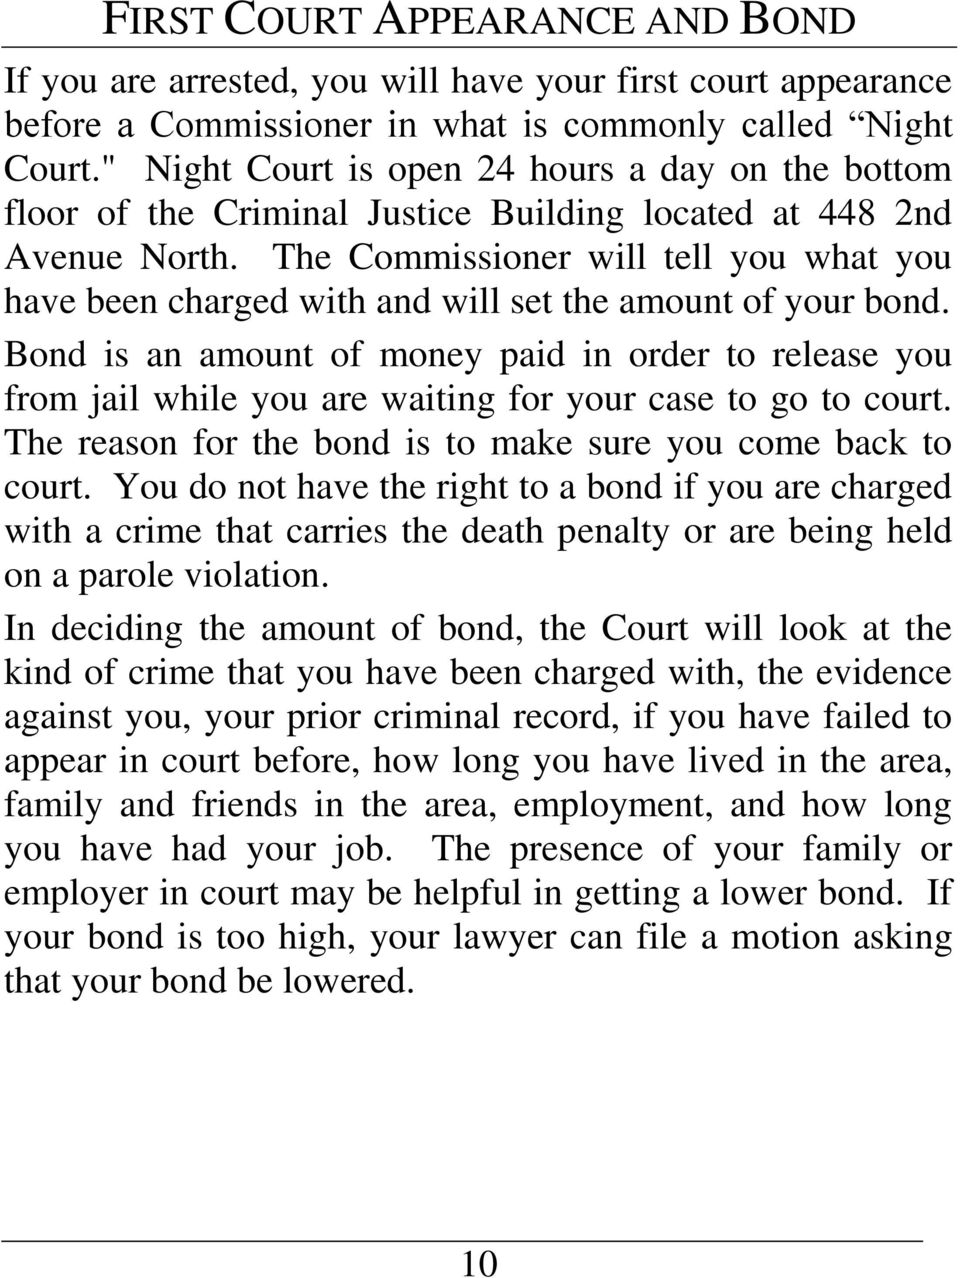 The Commissioner will tell you what you have been charged with and will set the amount of your bond.